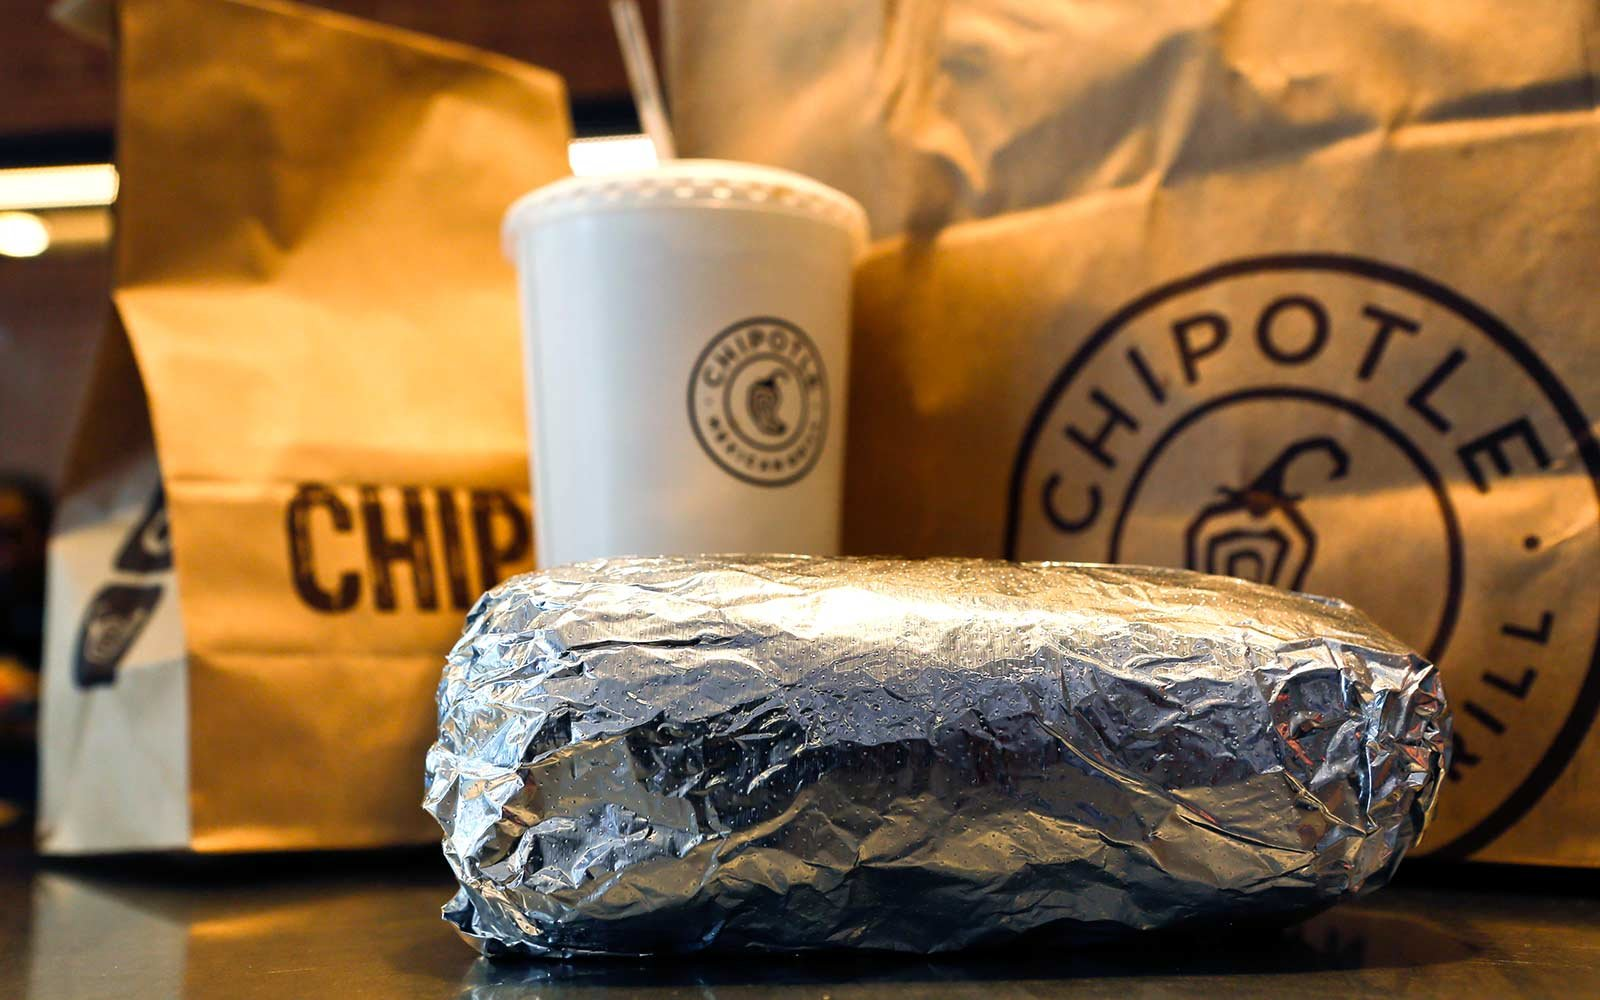 Free Chipotle on Halloween